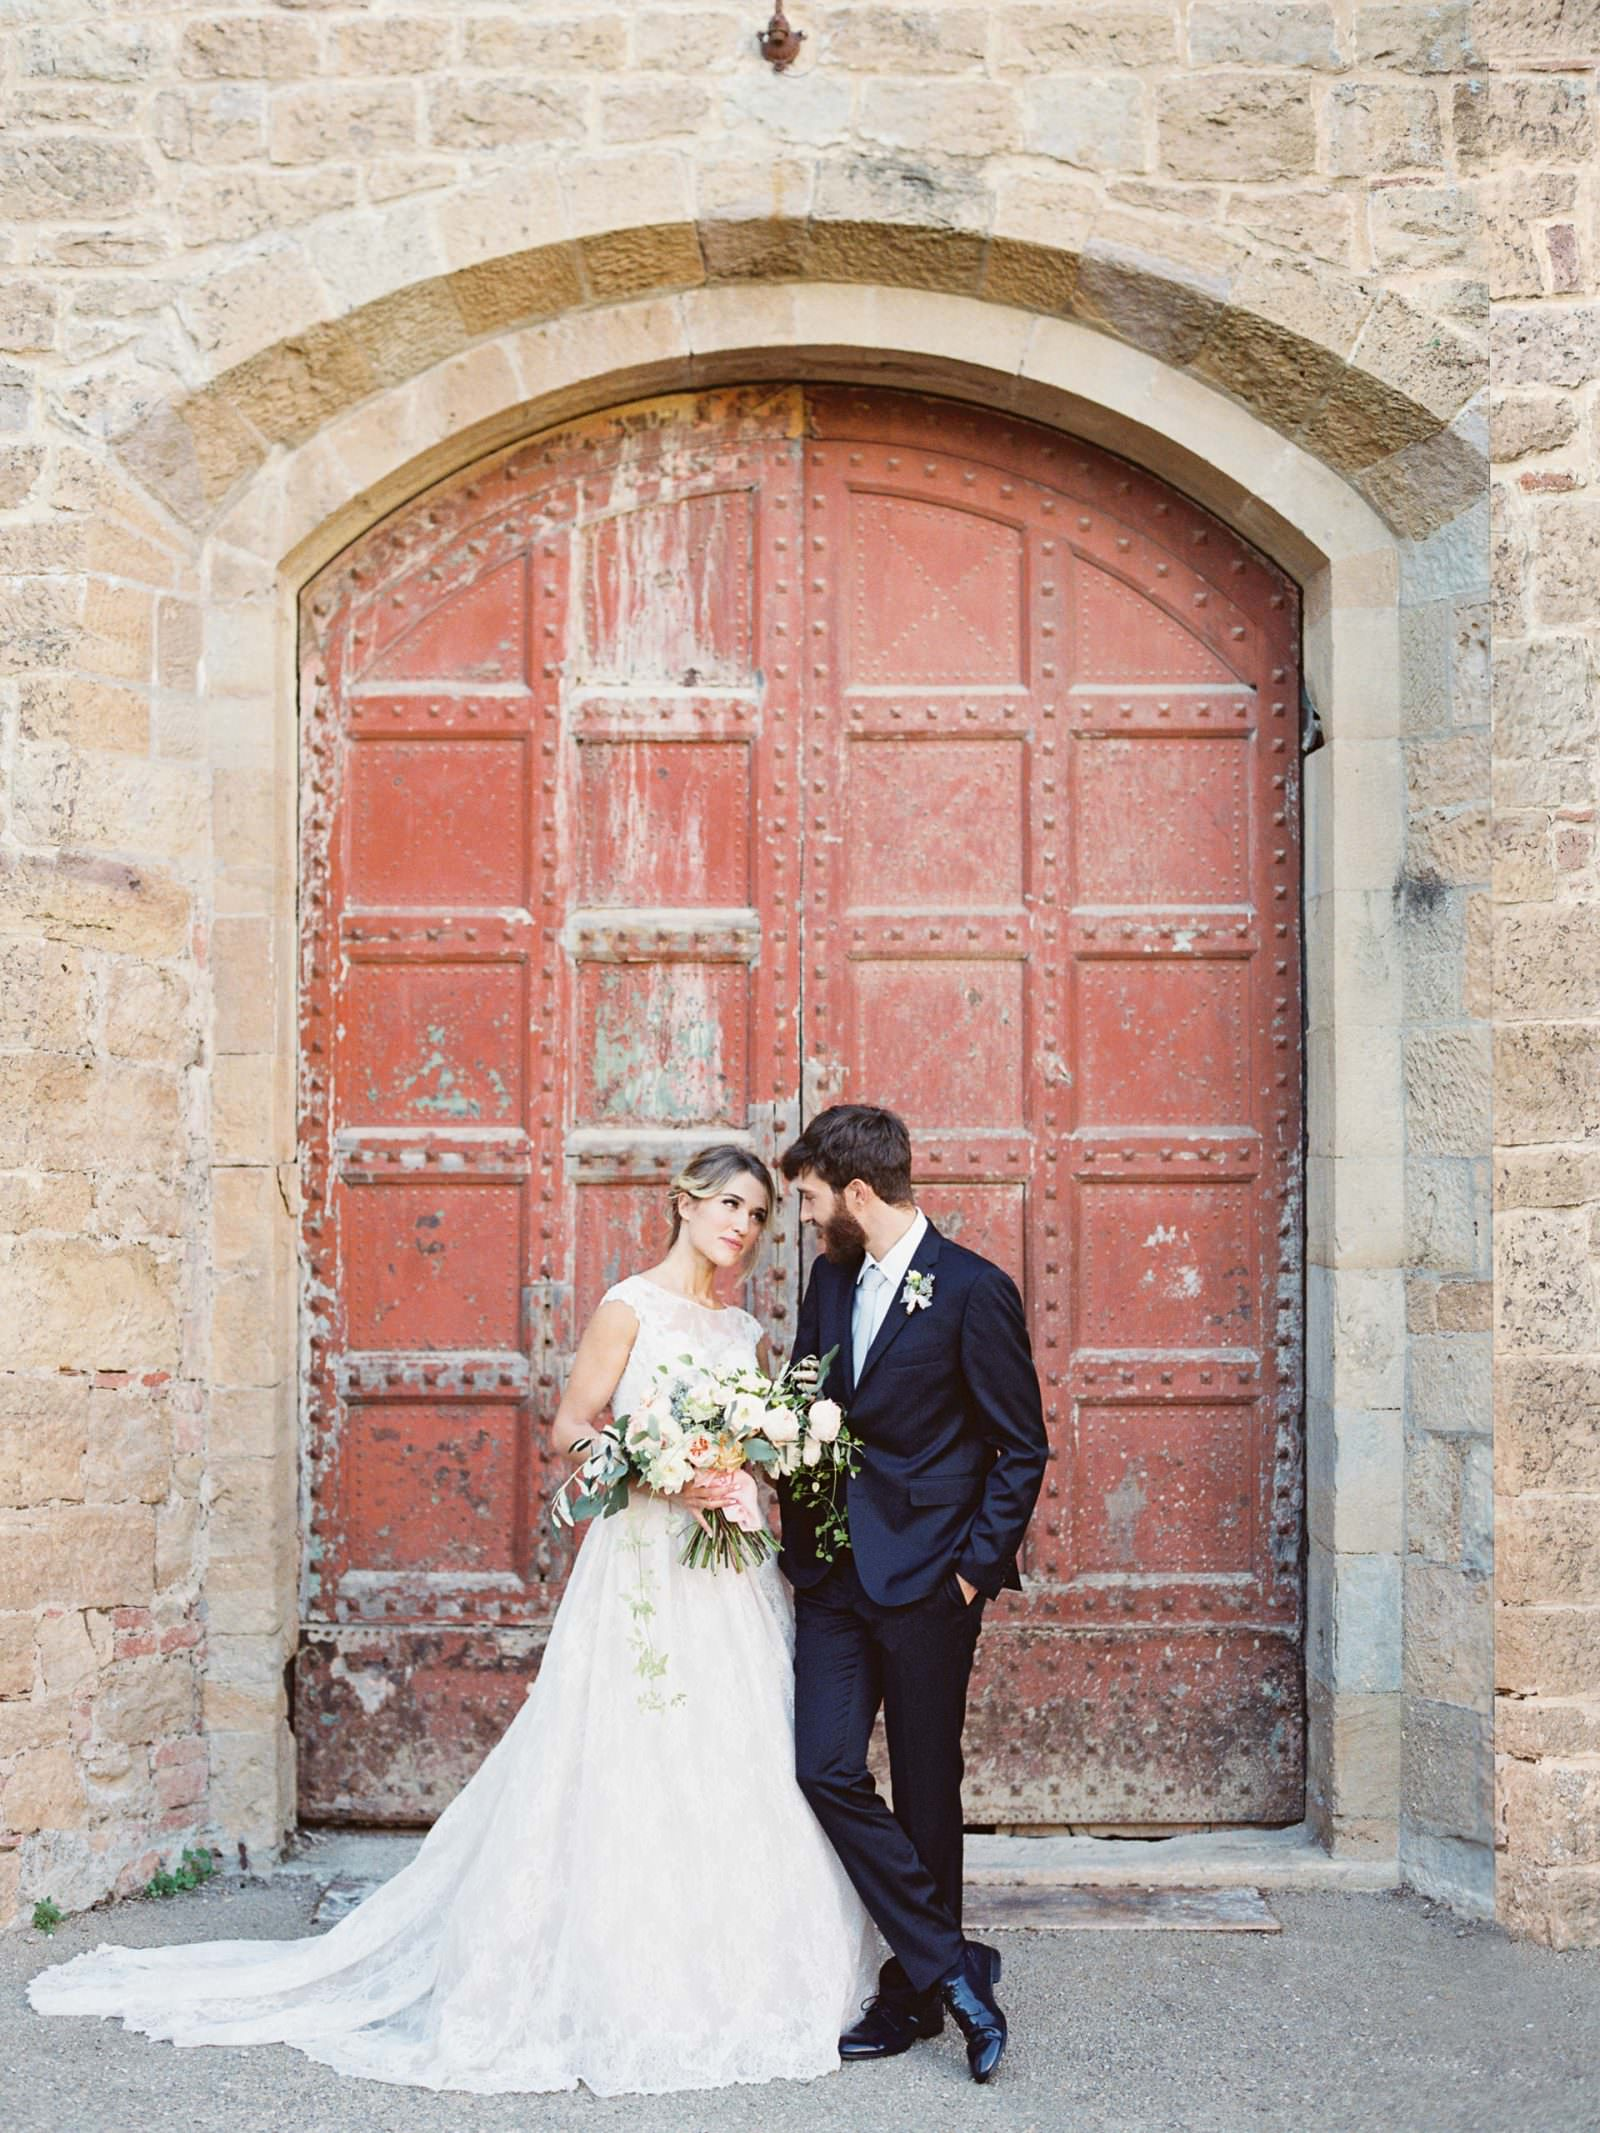 Castelfalfi, Toscana, Italy bridal portrait at the famous castle main doors